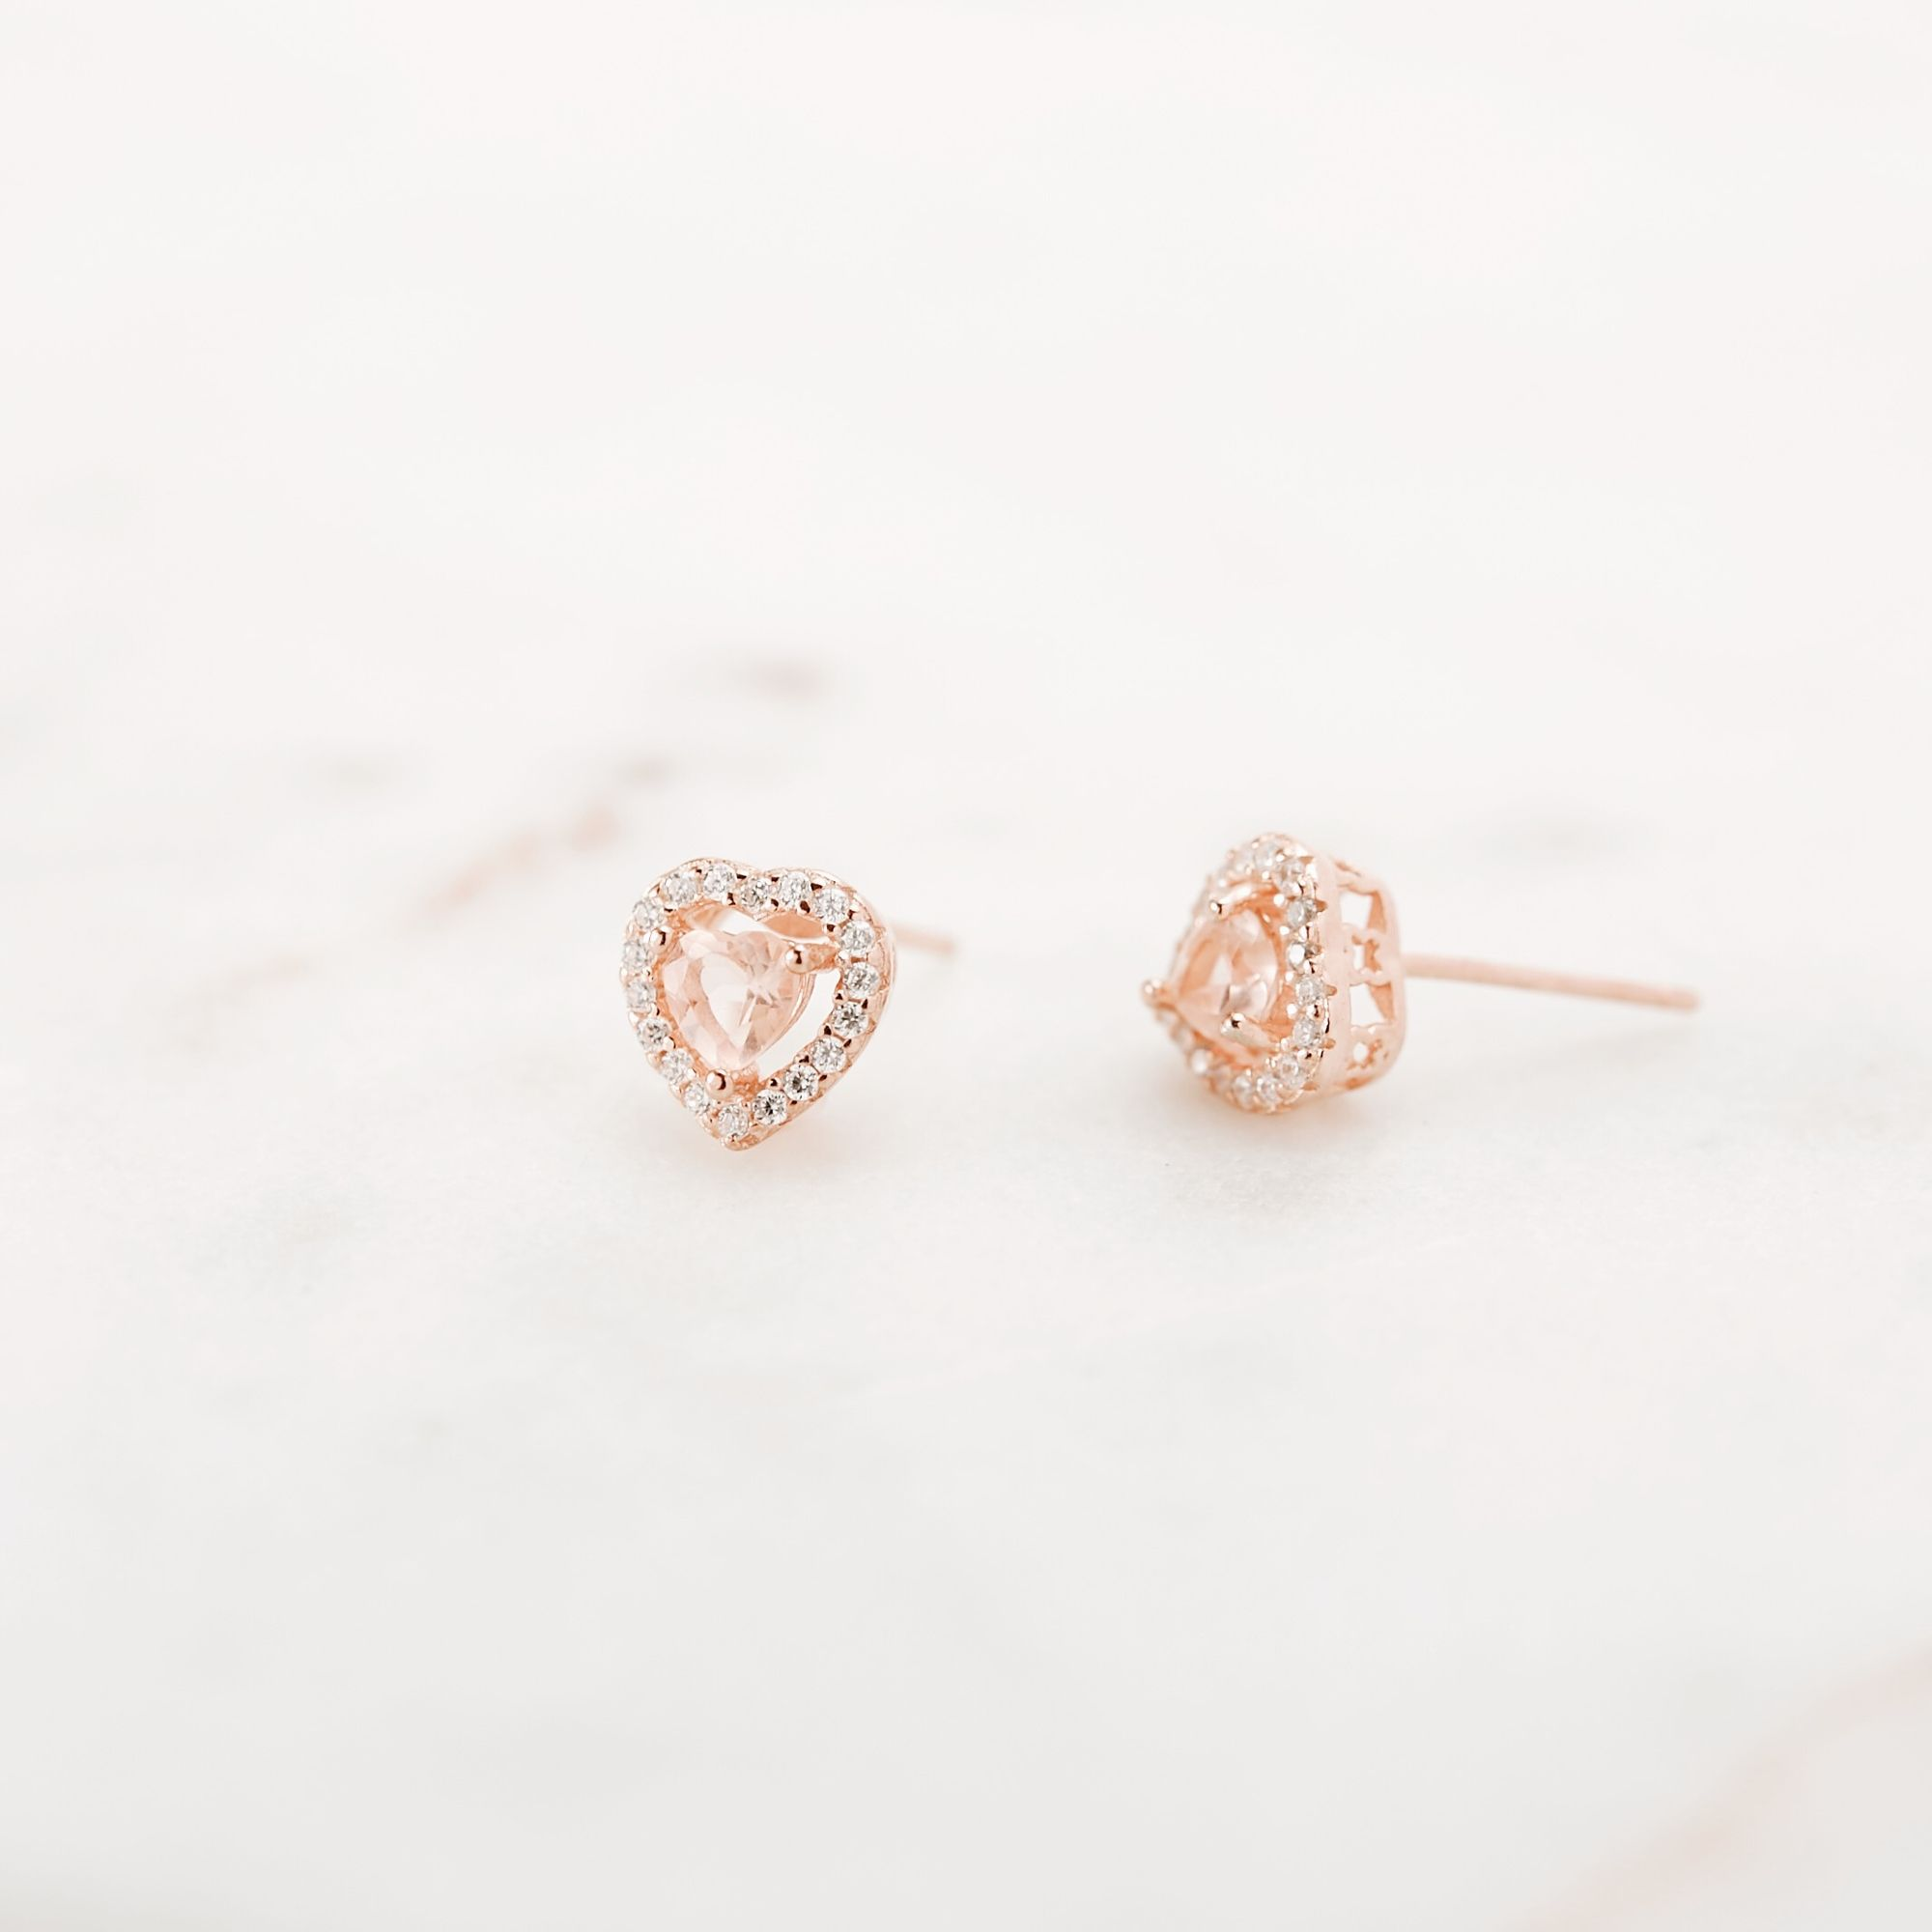 10x Rose Gold Rhinestone Pearl Button Crystal Finding Charm Earrings DIY